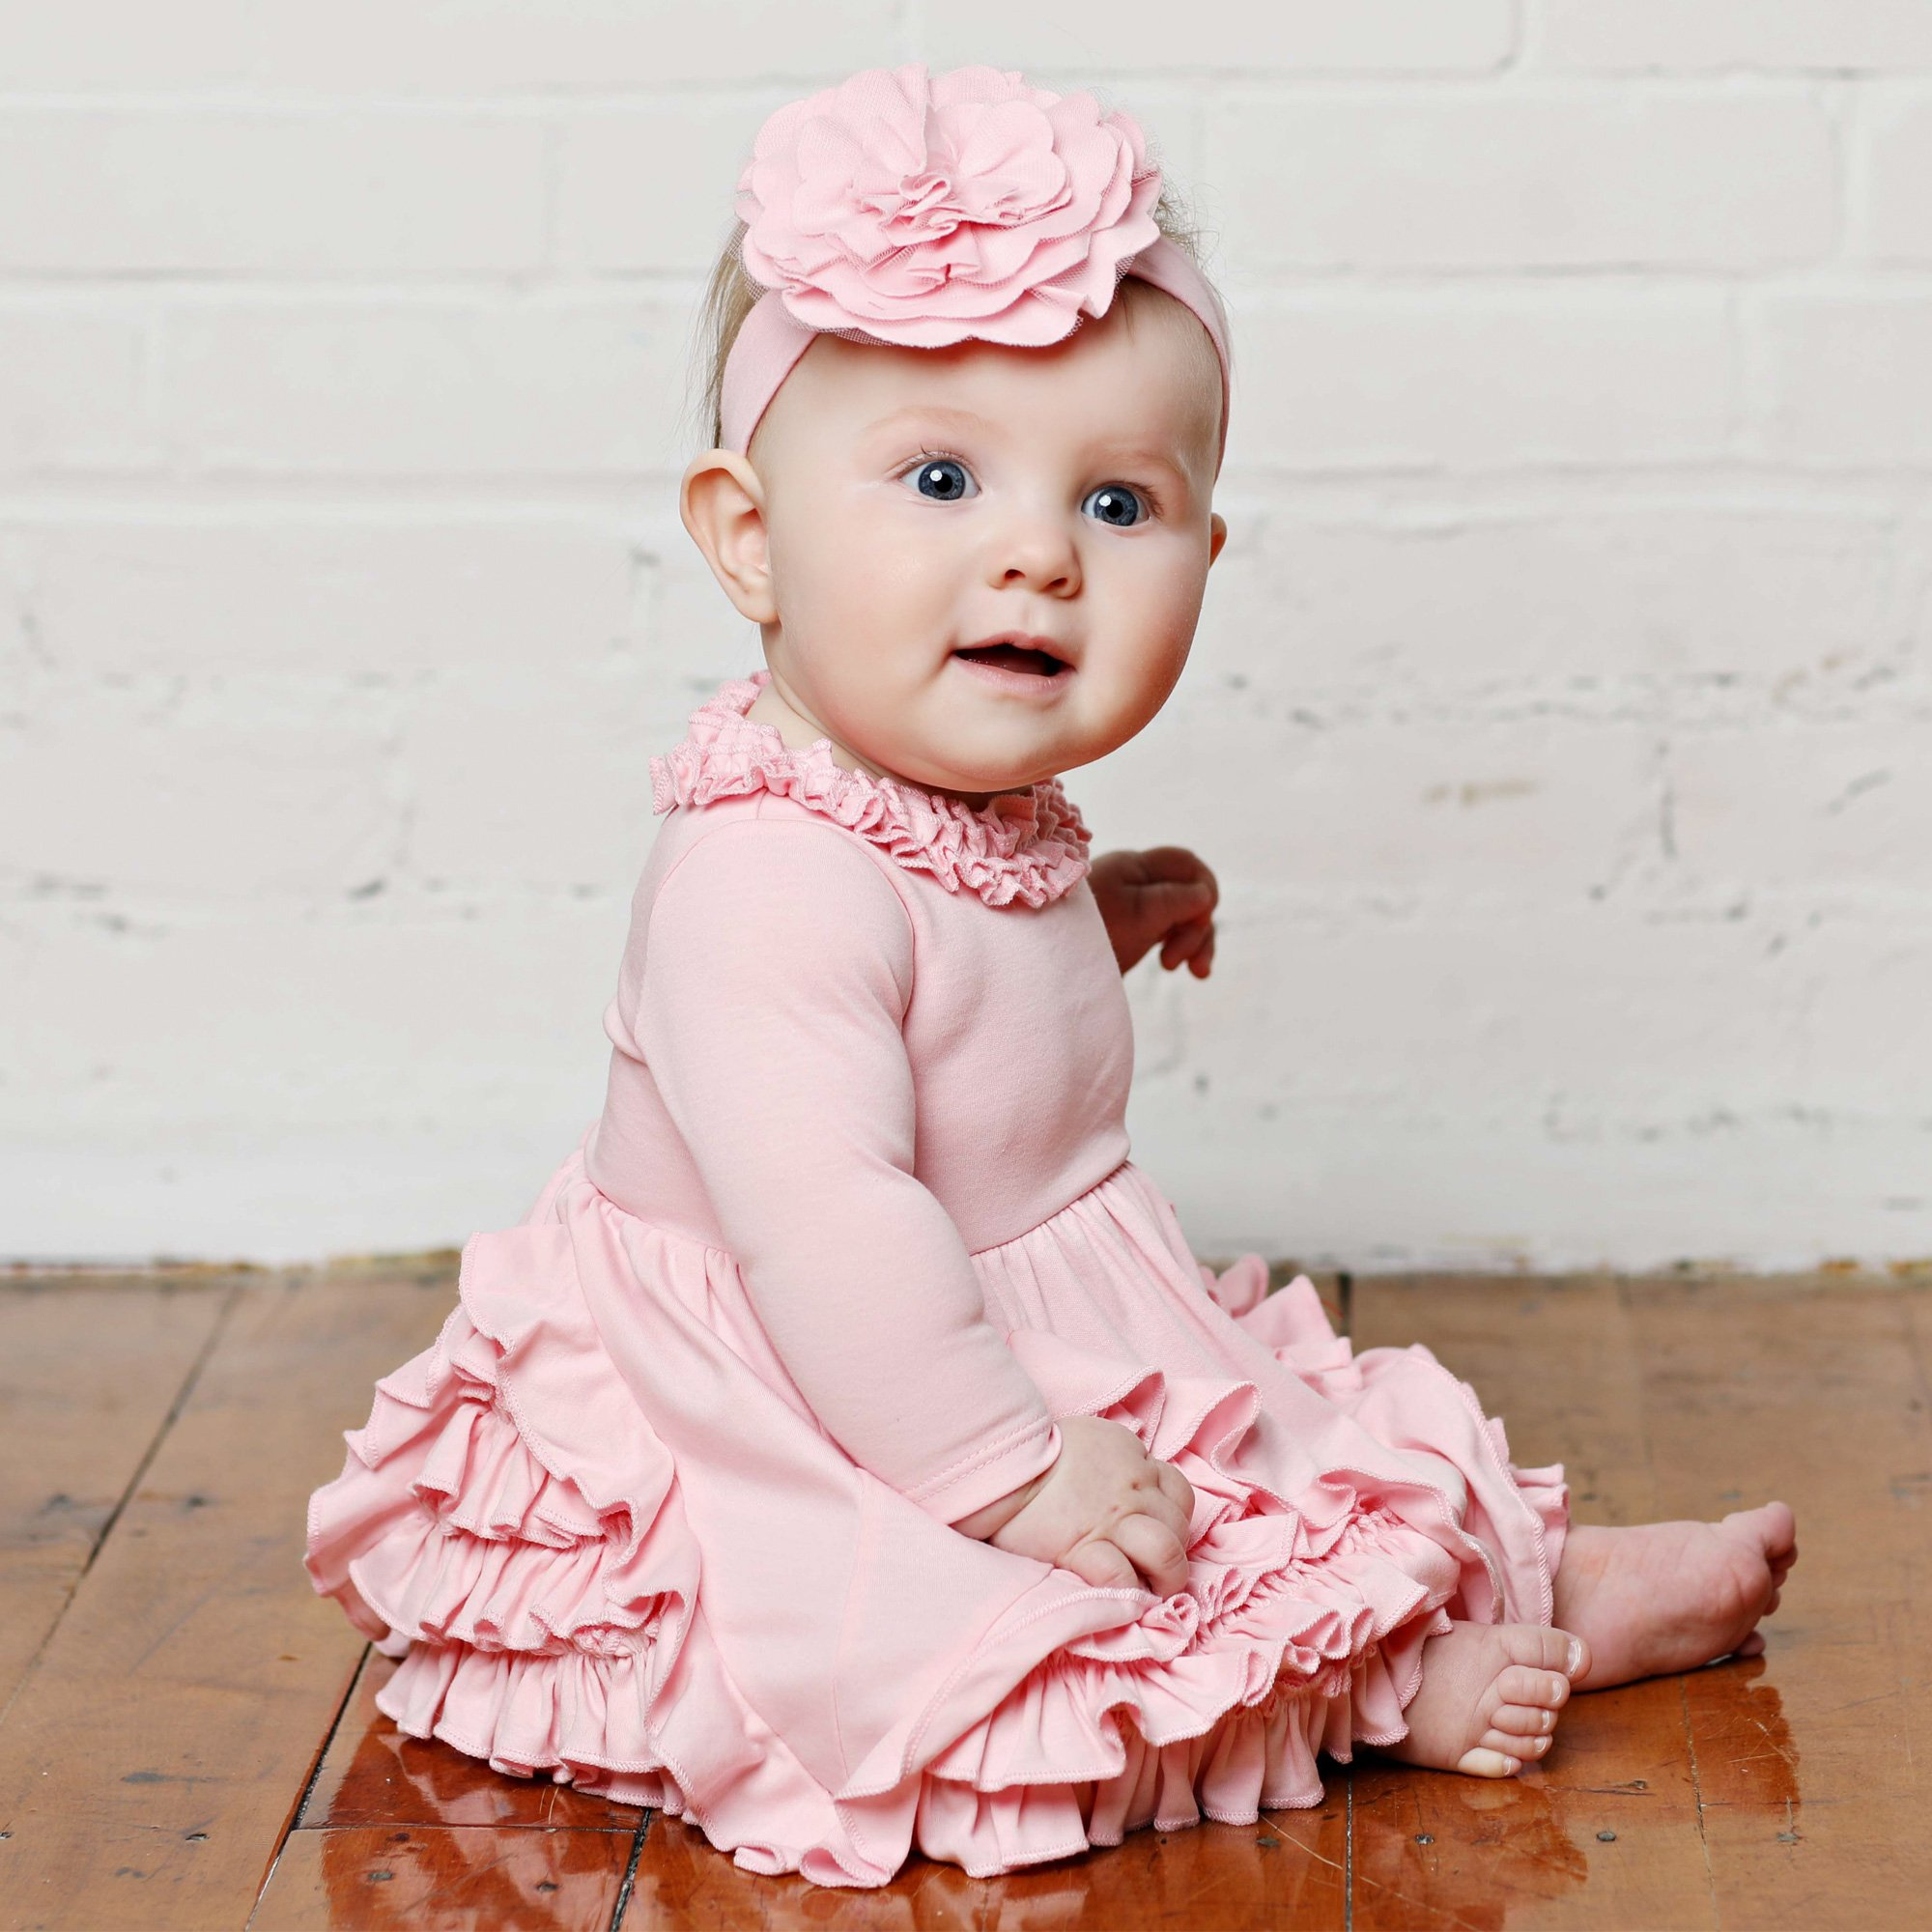 Lemon Loves Layette Baby Clothing and Newborn Layette Baby Bling